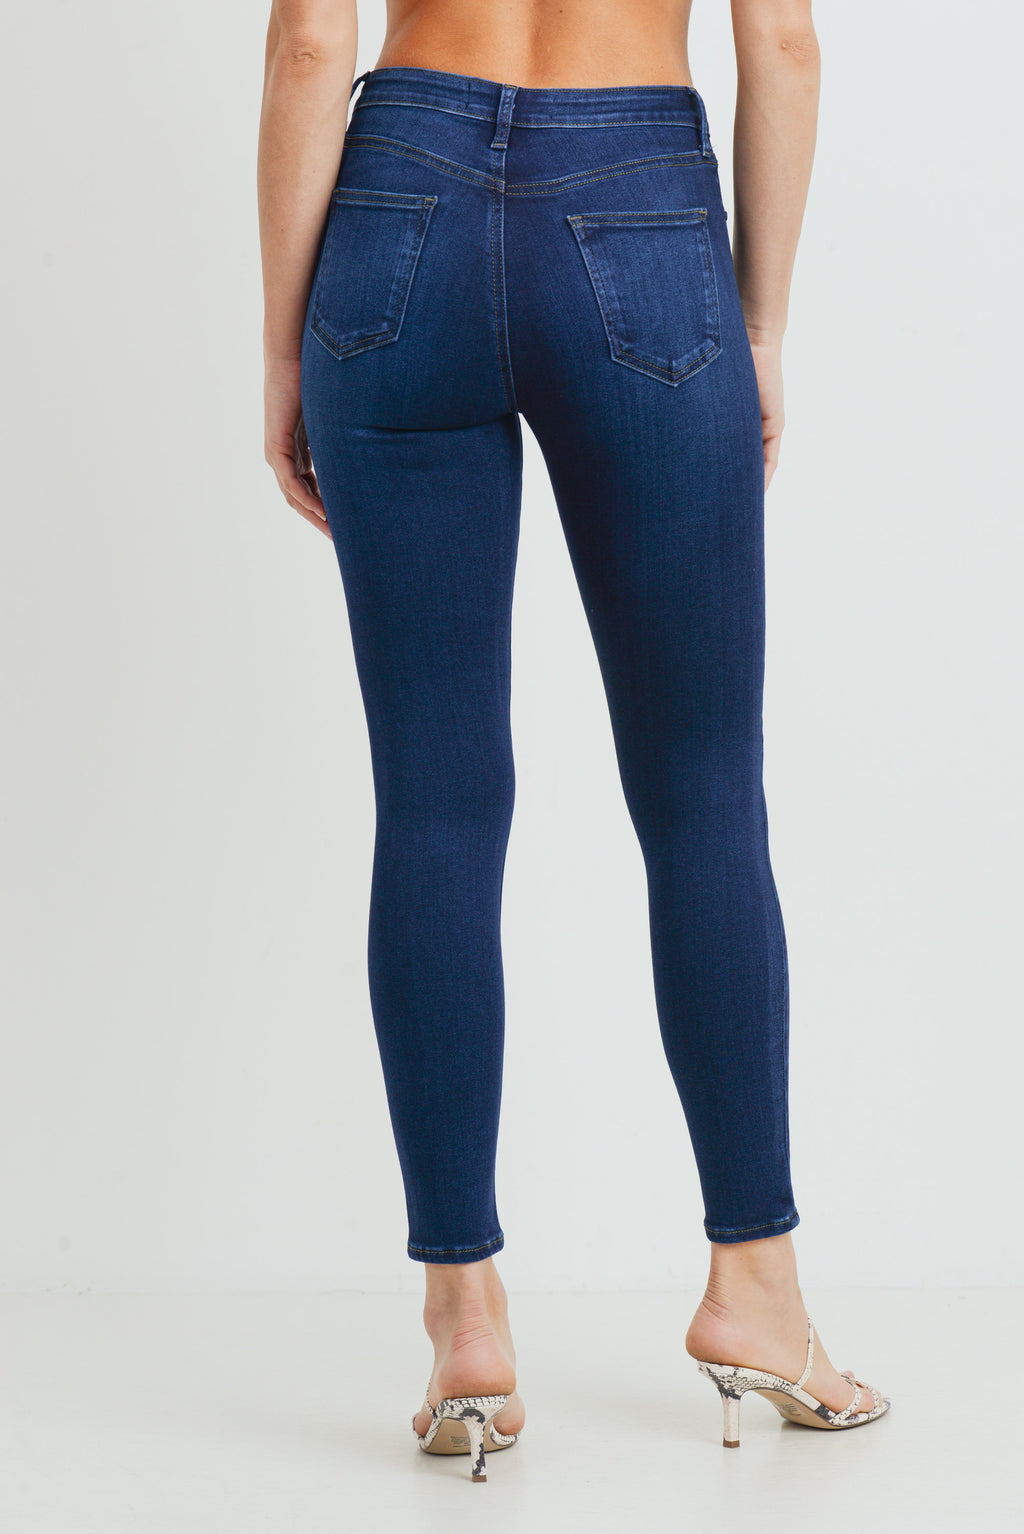 LAST CALL SIZE 26 | Classic Clean Dark Wash Skinny Jeans